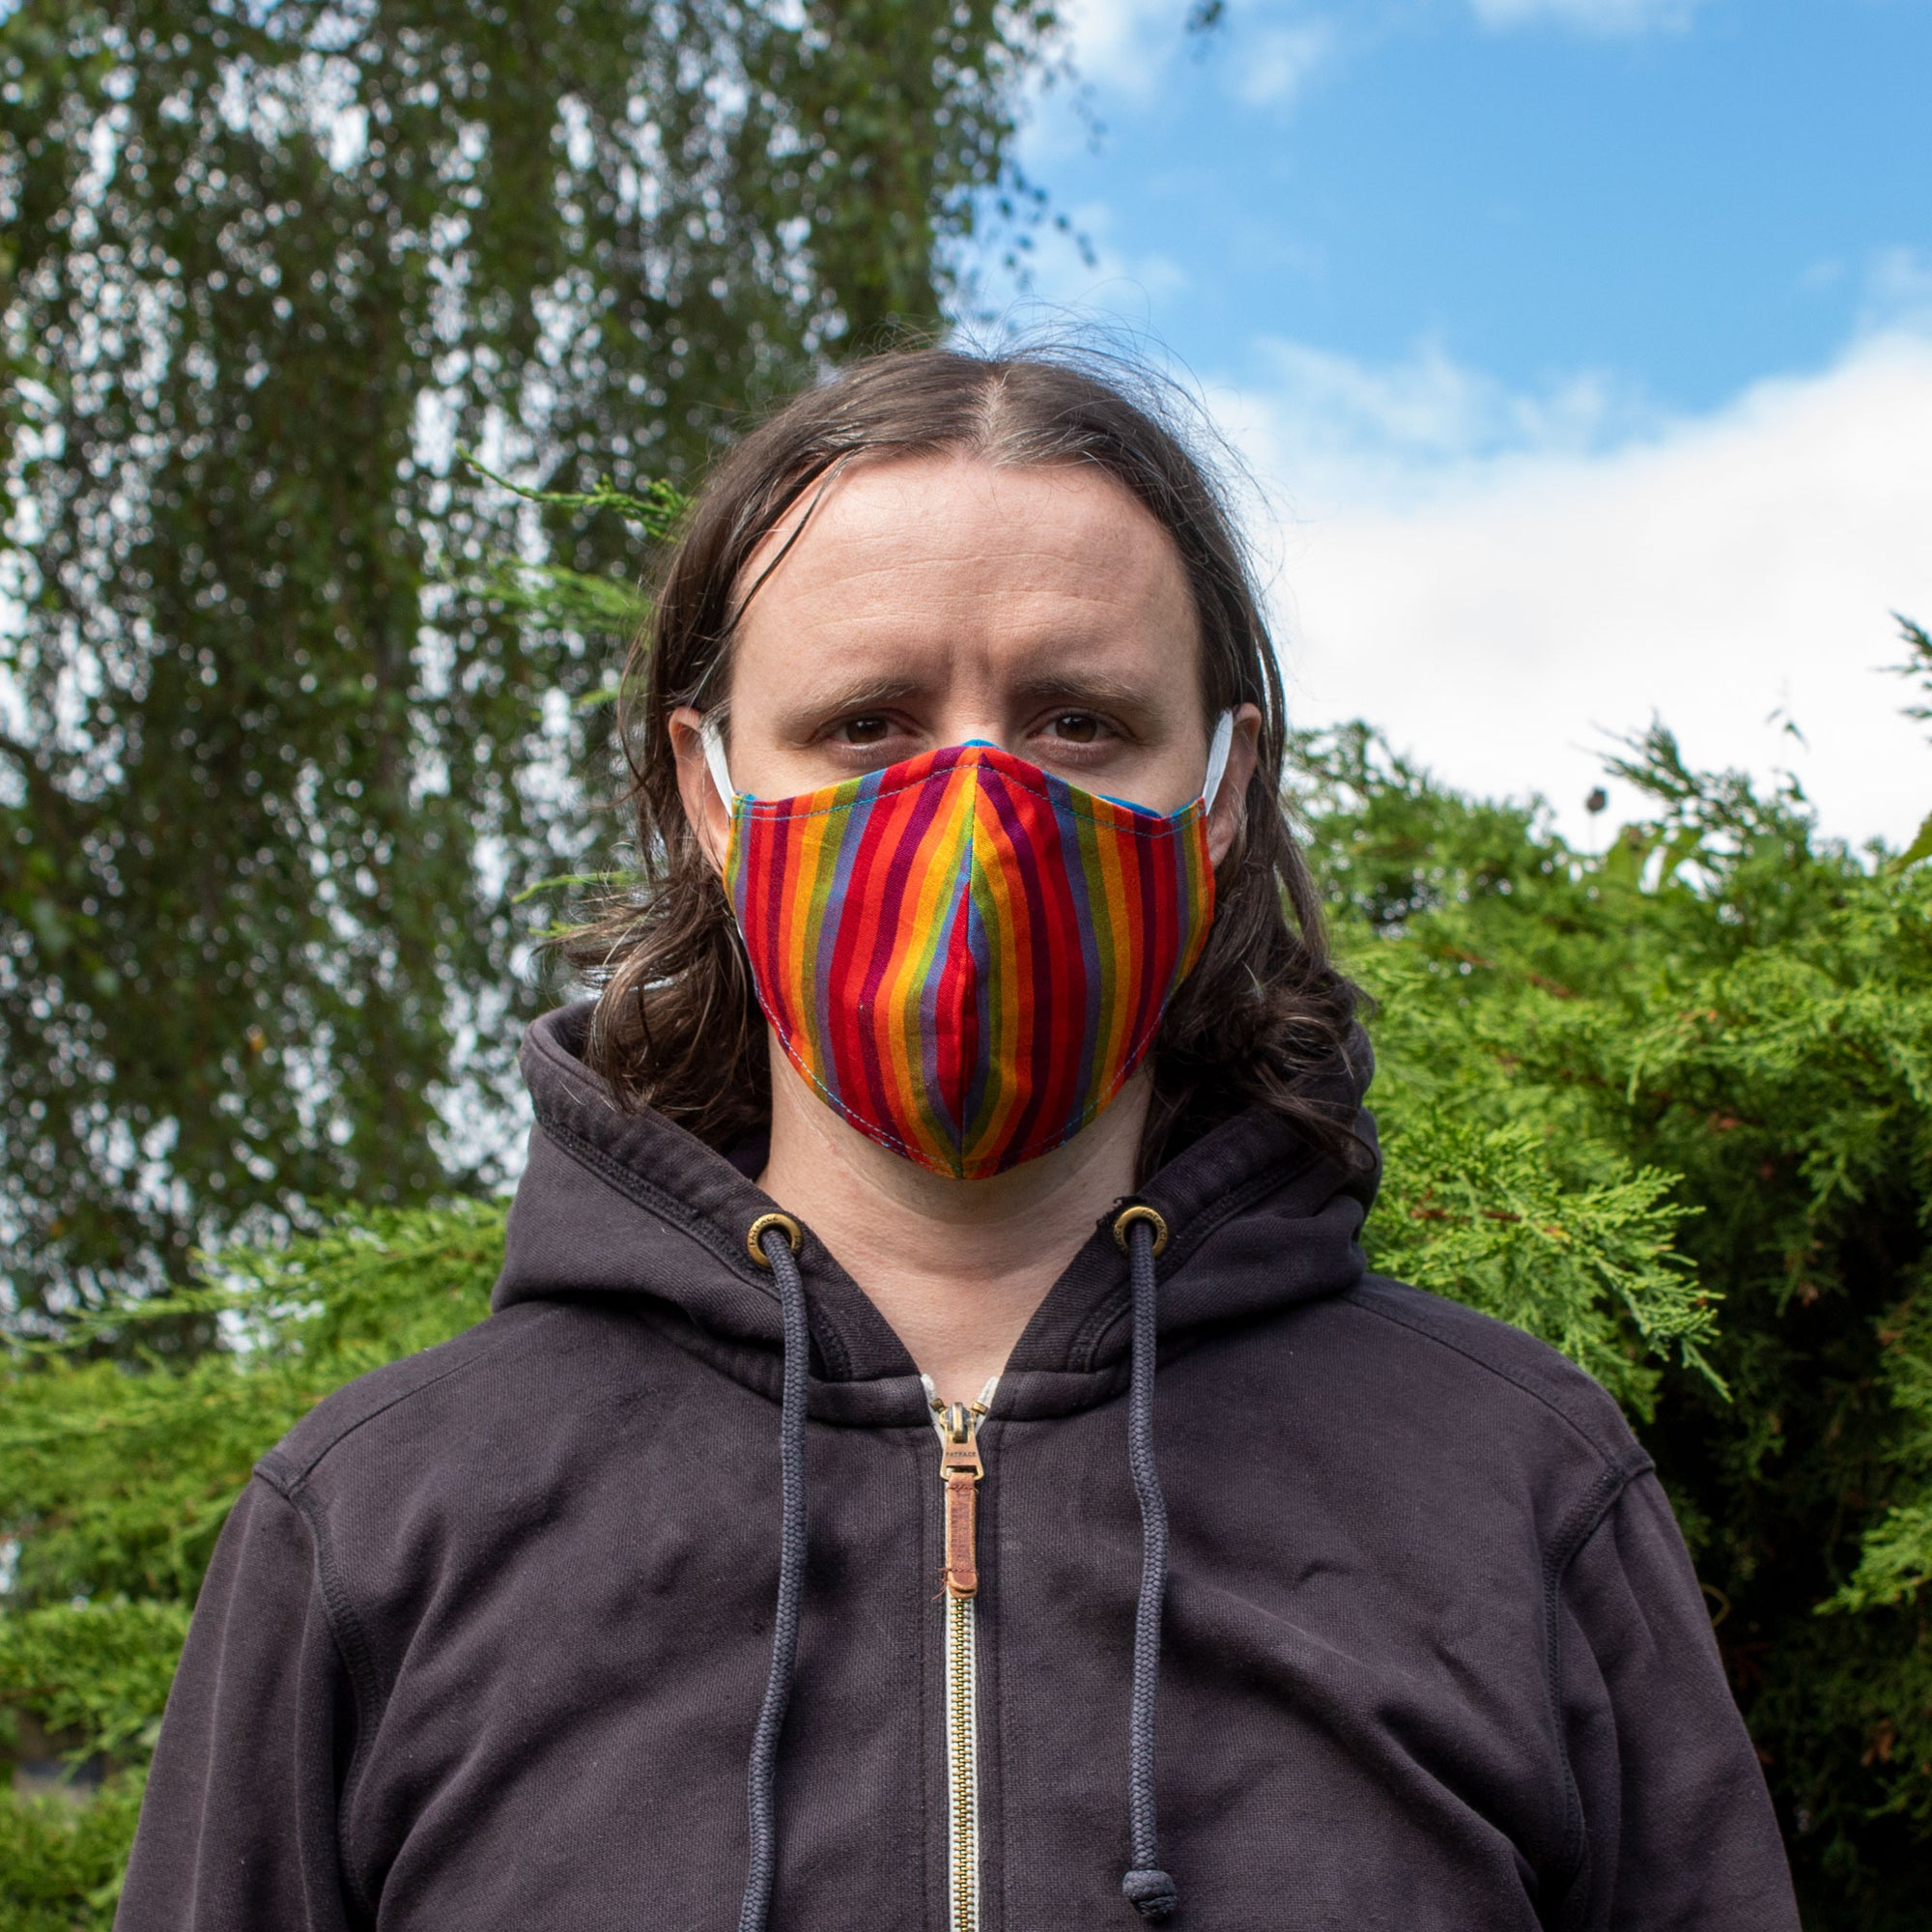 Rainbow Face Covering - Larger Size | Face Covering - The Naughty Shrew